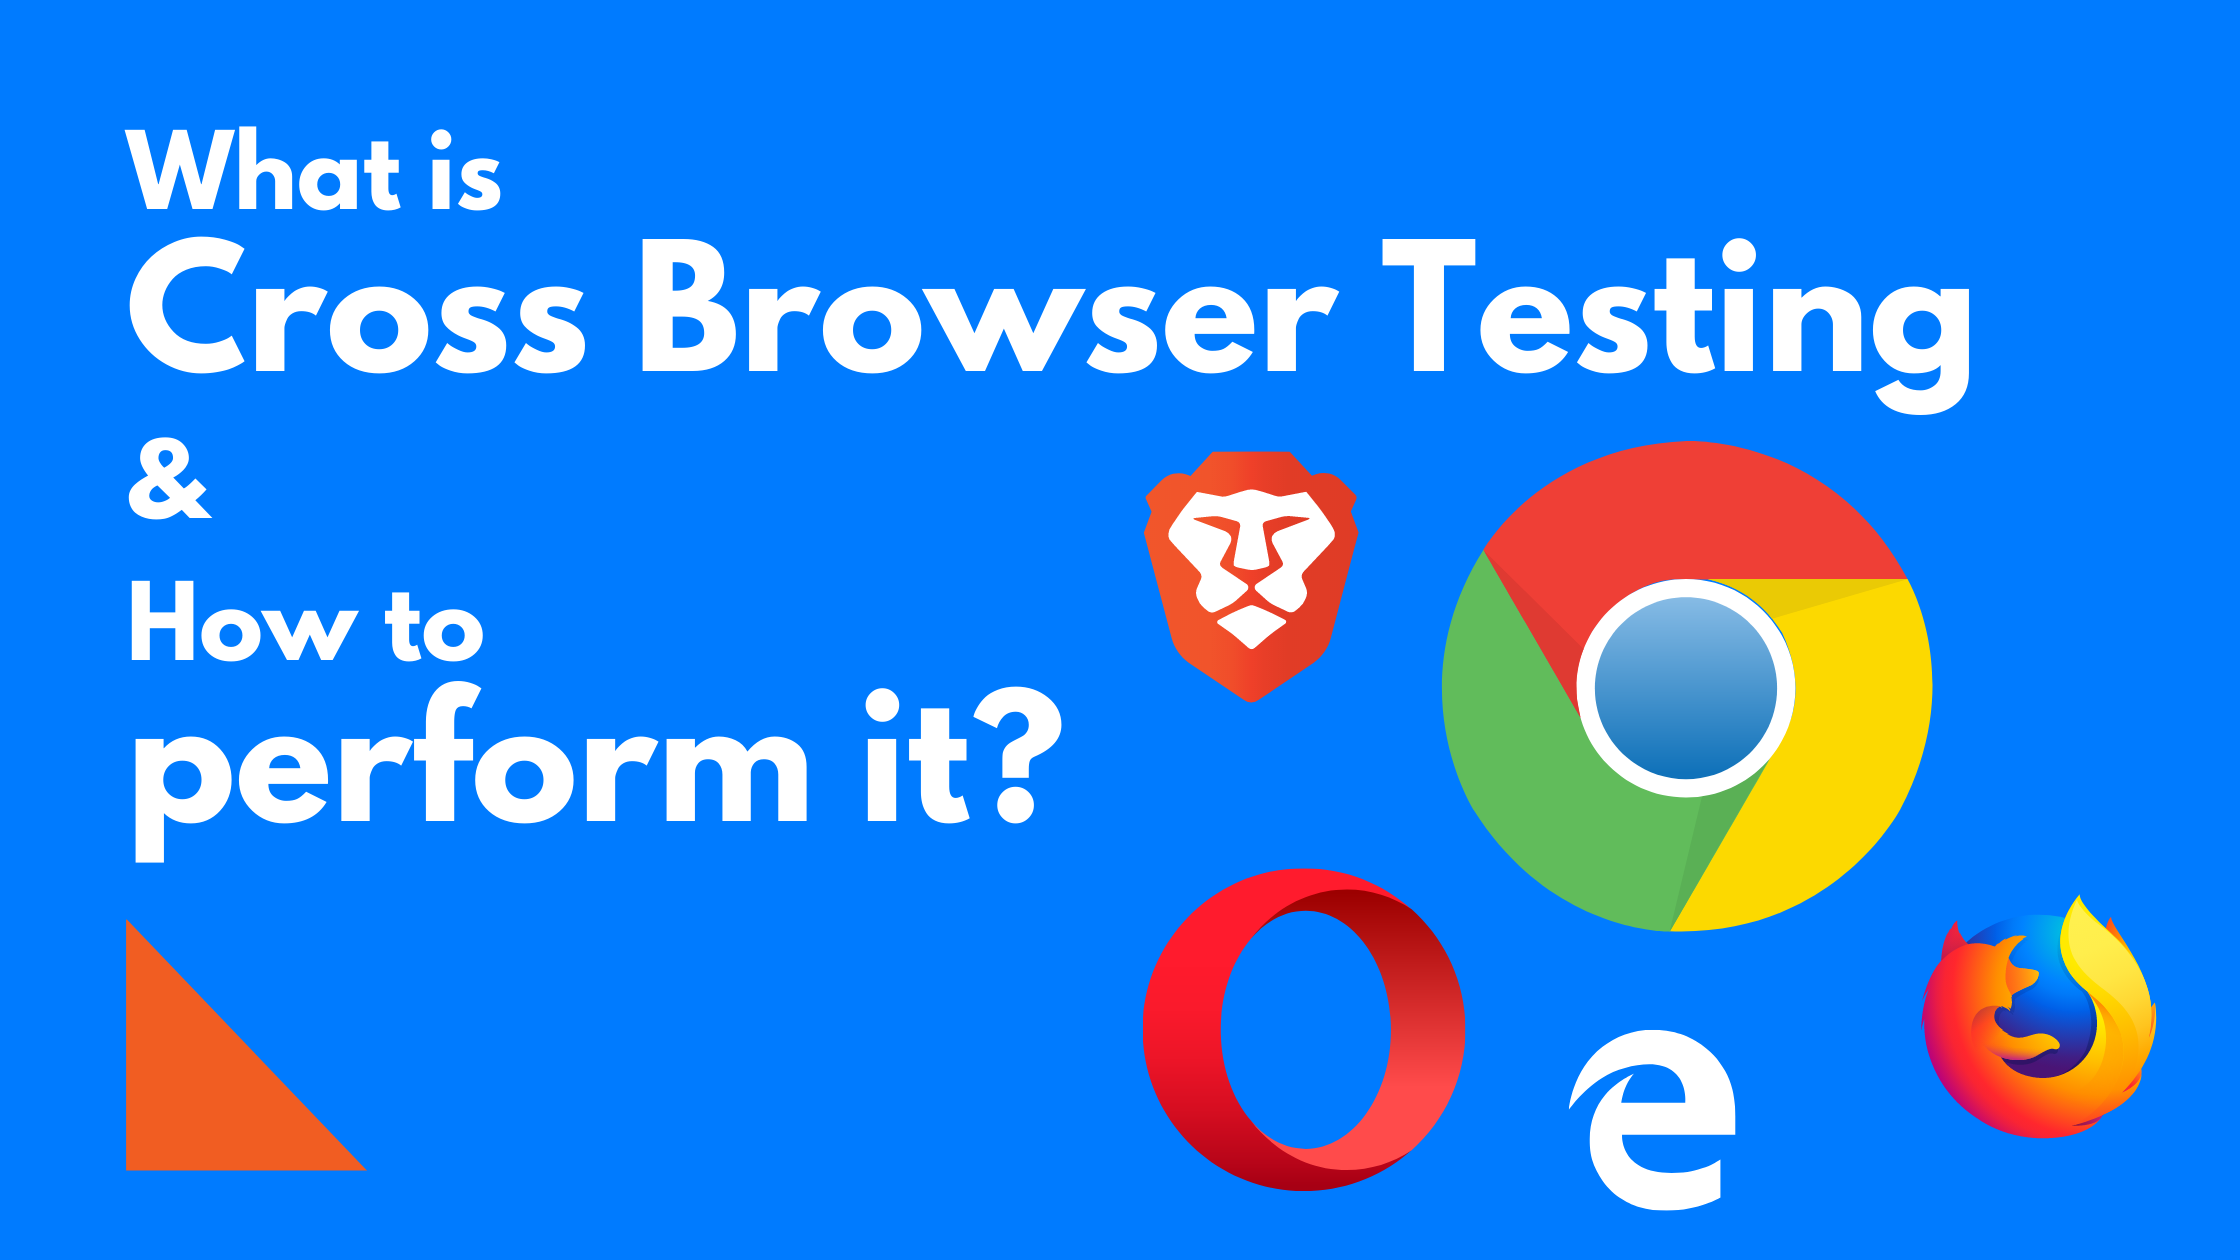 What is Cross Browser Testing